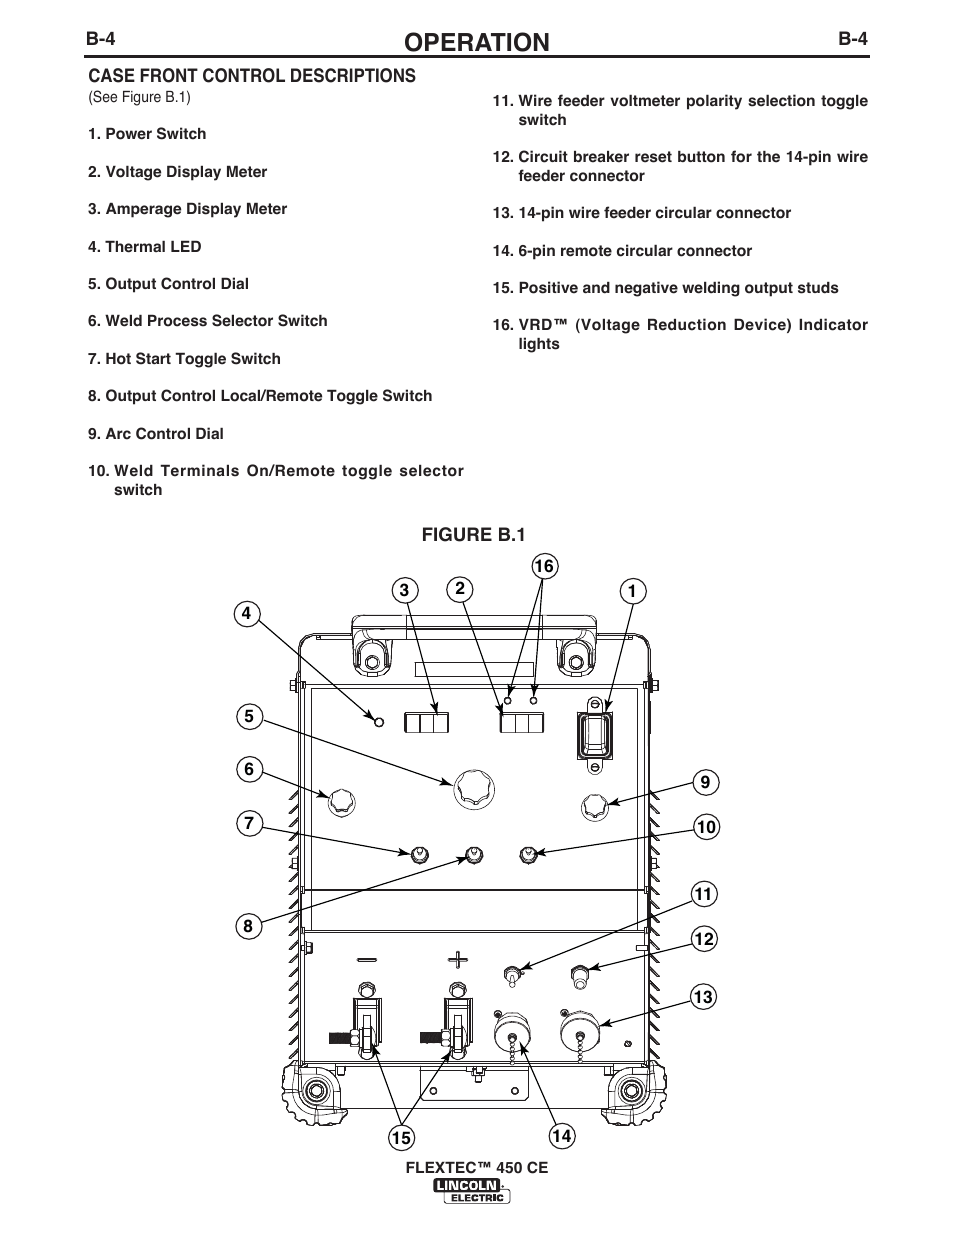 Operation Lincoln Electric Flextec 450 Ce User Manual Page 21 40 Remote Toggle Switch Circuit